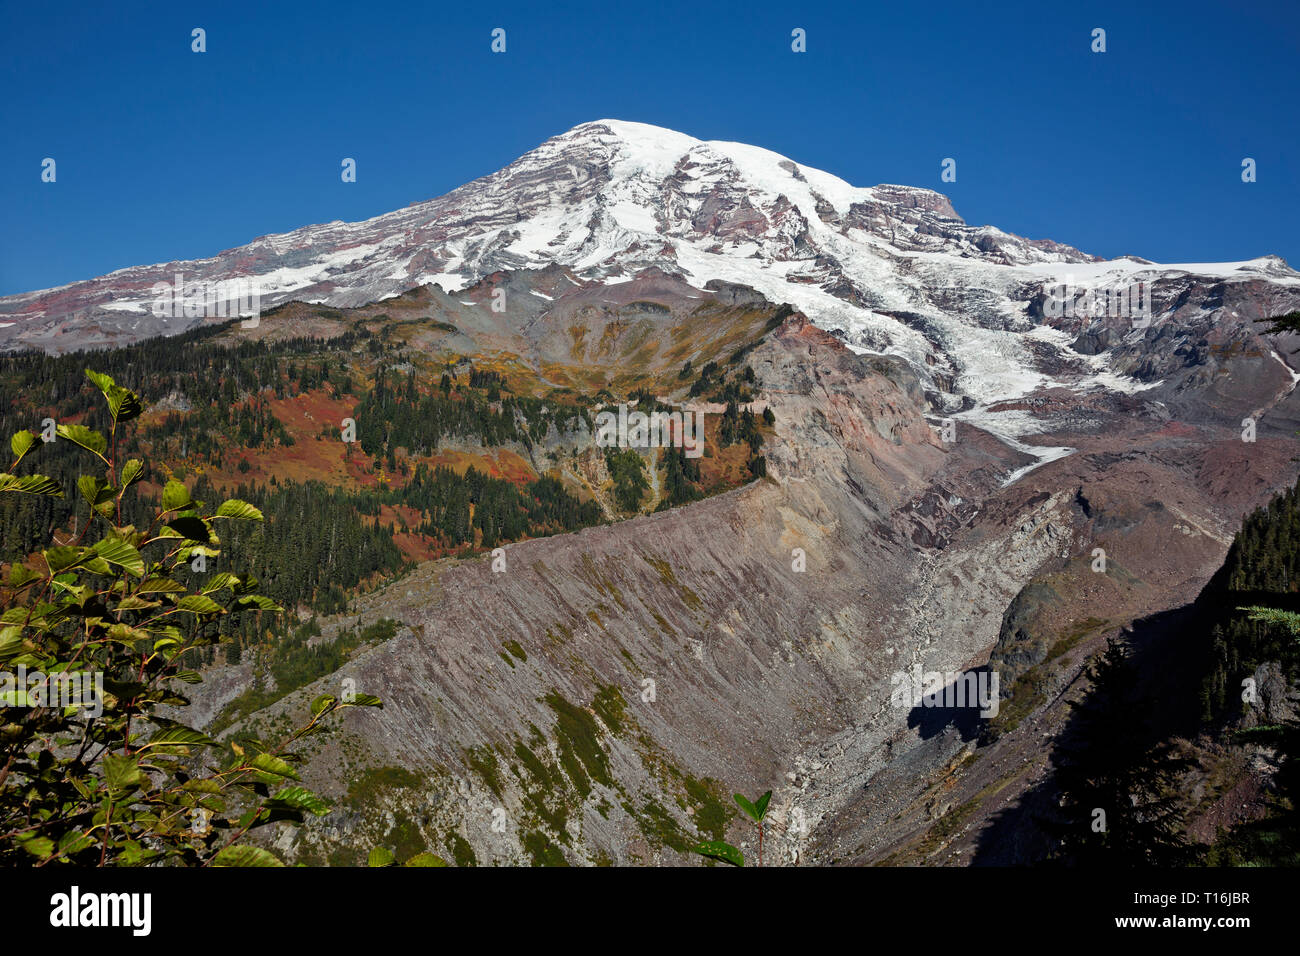 WASHINGTON - View up the debris covered terminus of the Nisqually Glacier from a viewpoint along the Nisqually Vista Trail in Mount Rainier NP. - Stock Image